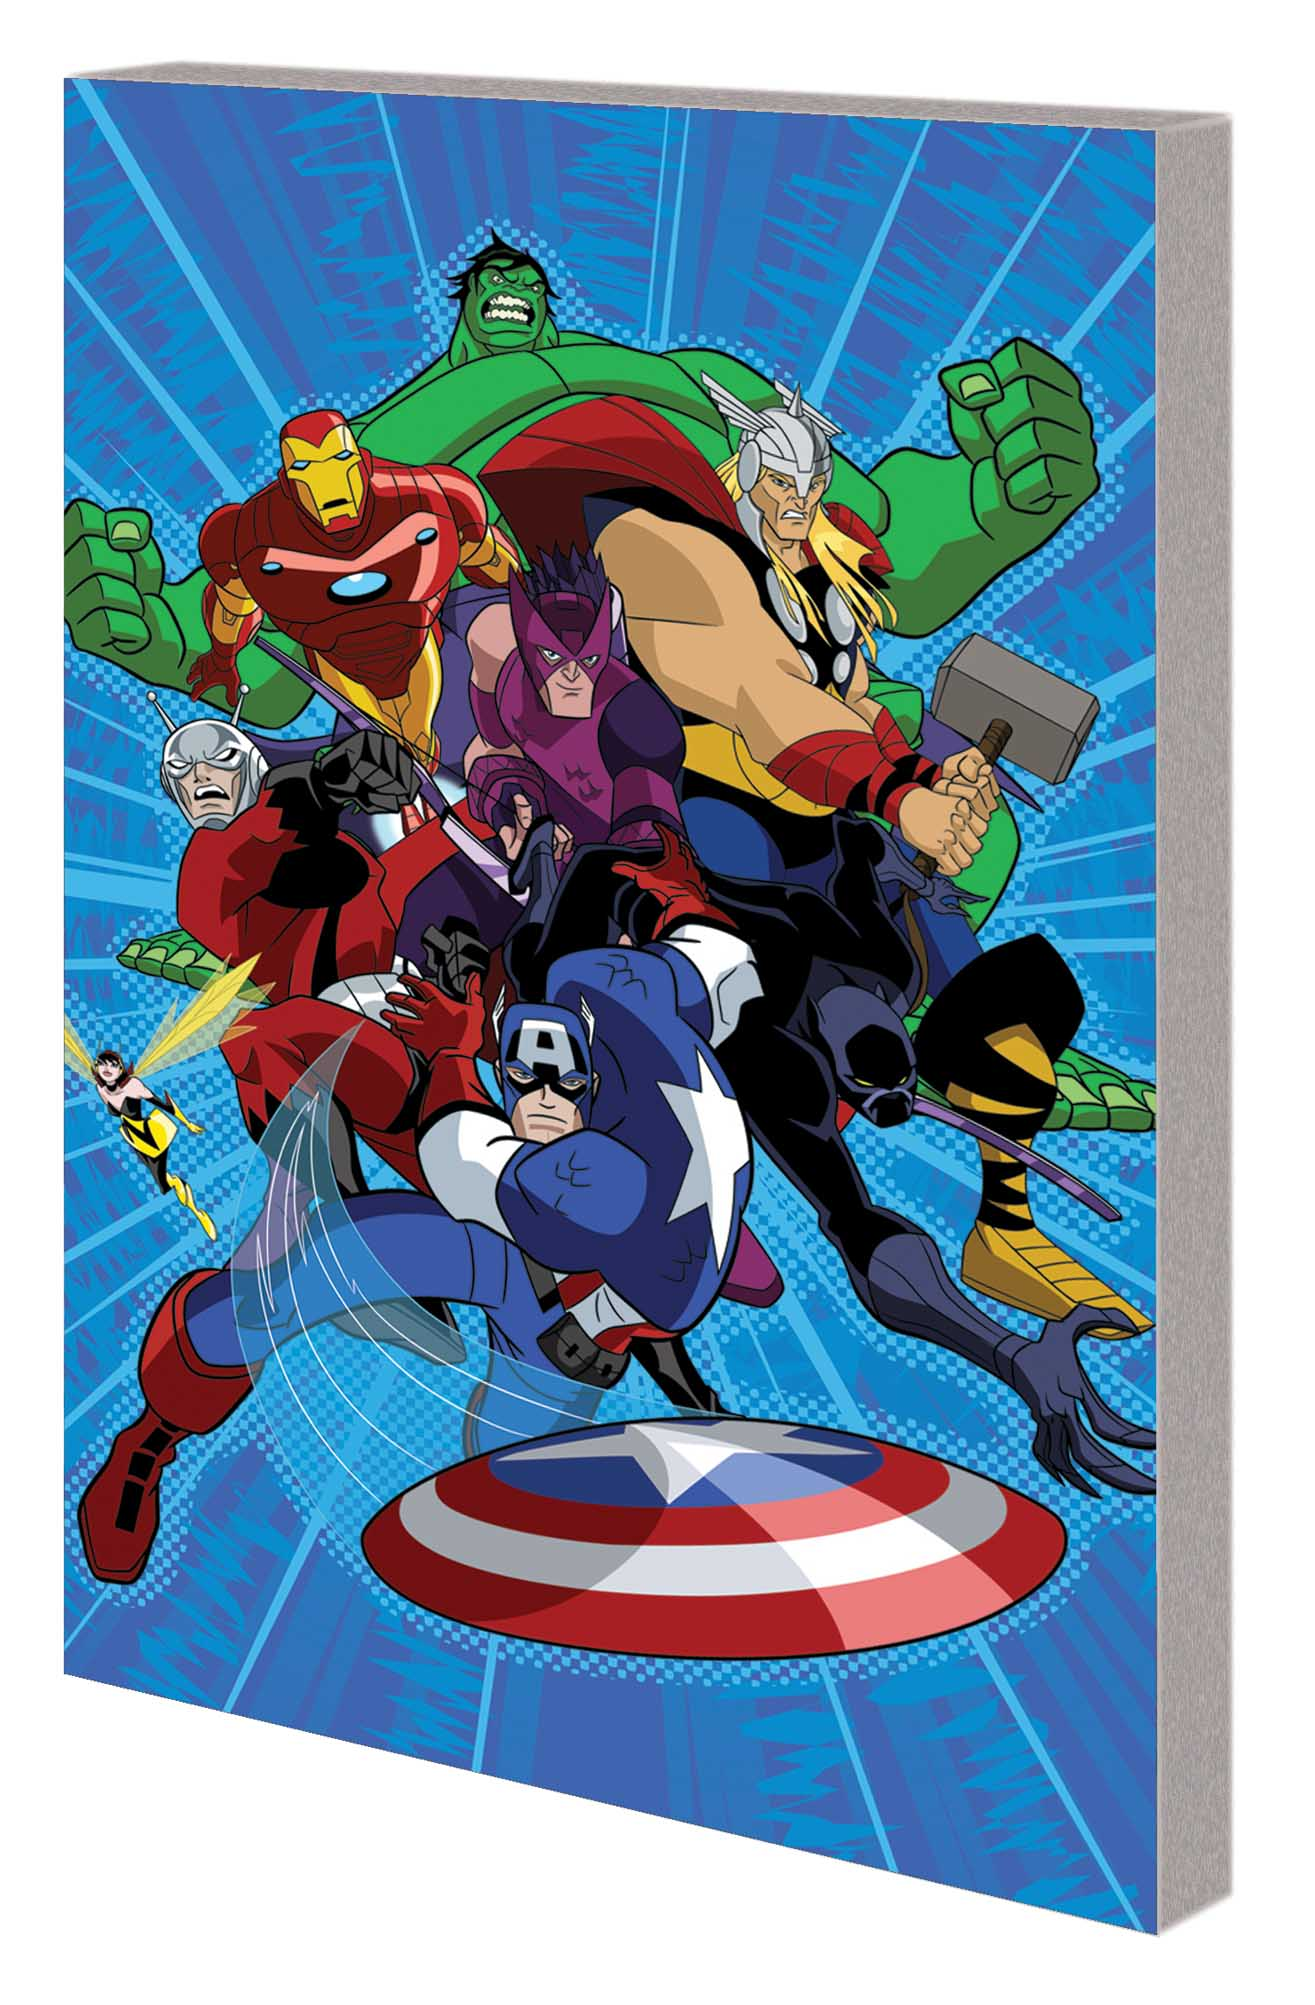 MARVEL UNIVERSE AVENGERS: EARTH'S MIGHTIEST HEROES COMIC READER #4